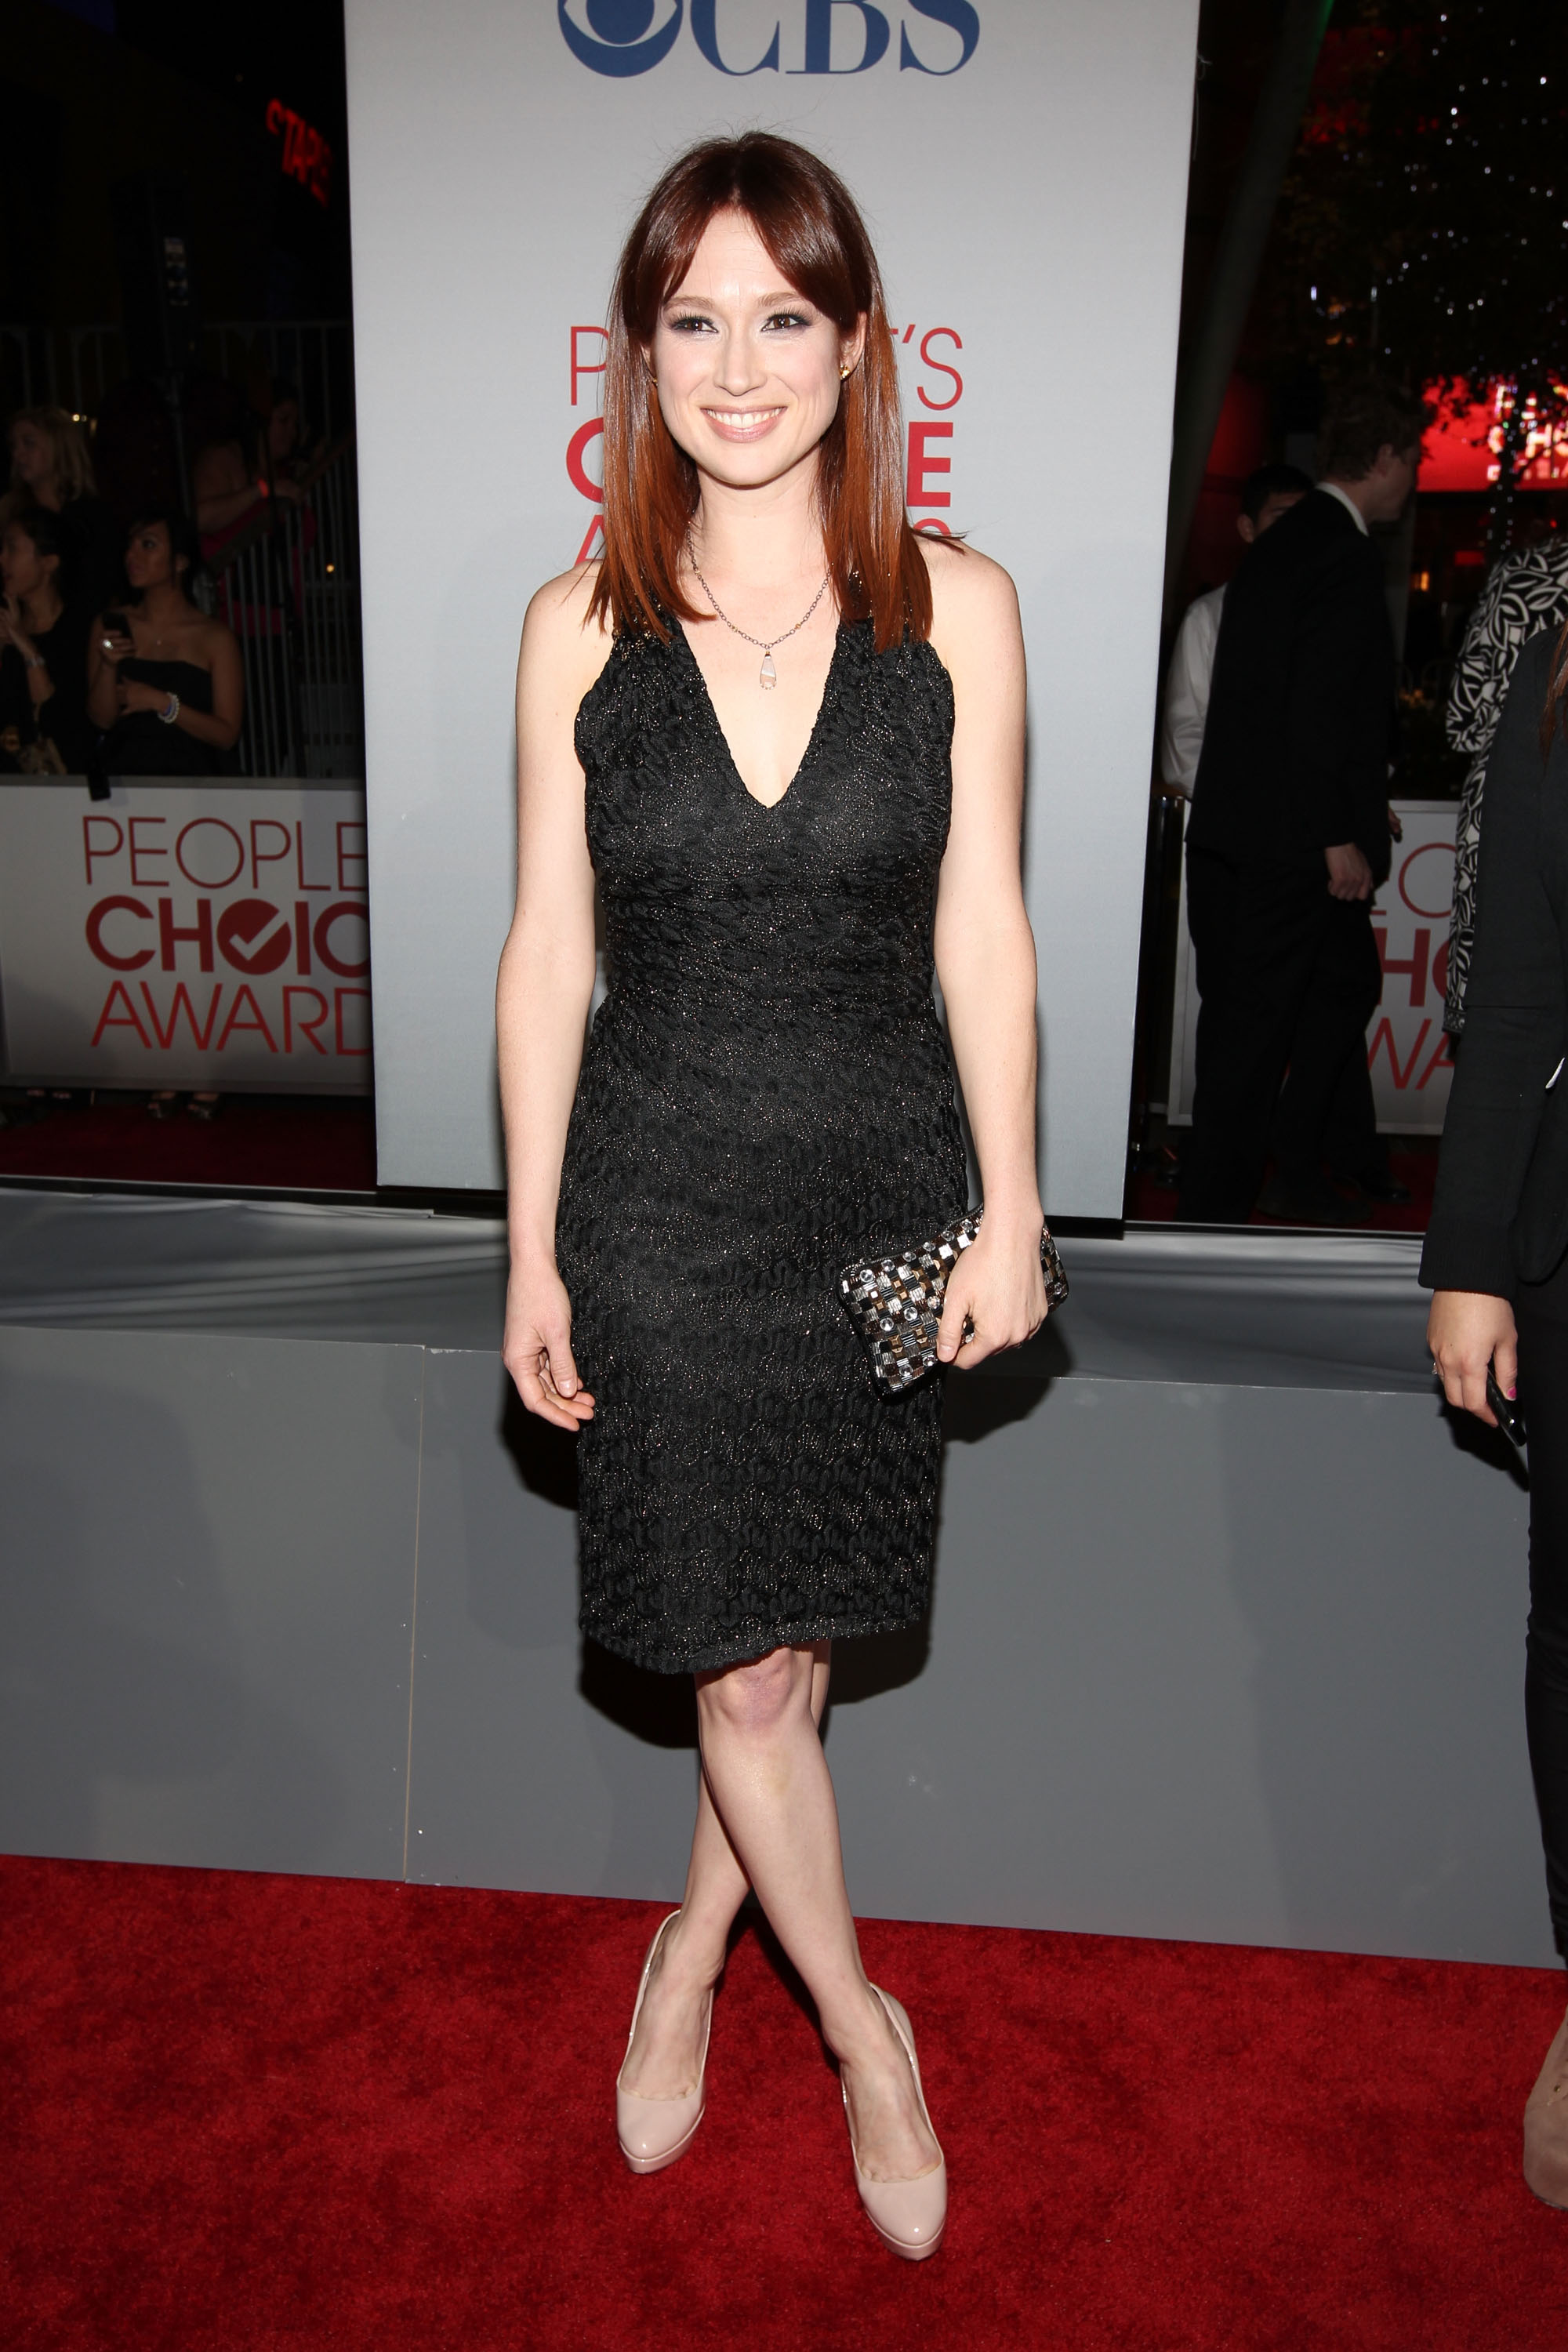 LOS ANGELES, CA - JANUARY 11: Actress Ellie Kemper arrives at the 2012 People's Choice Awards at Nokia Theatre L.A. Live on January 11, 2012 in Los Angeles, California. (Photo by Christopher Polk/Getty Images for PCA)